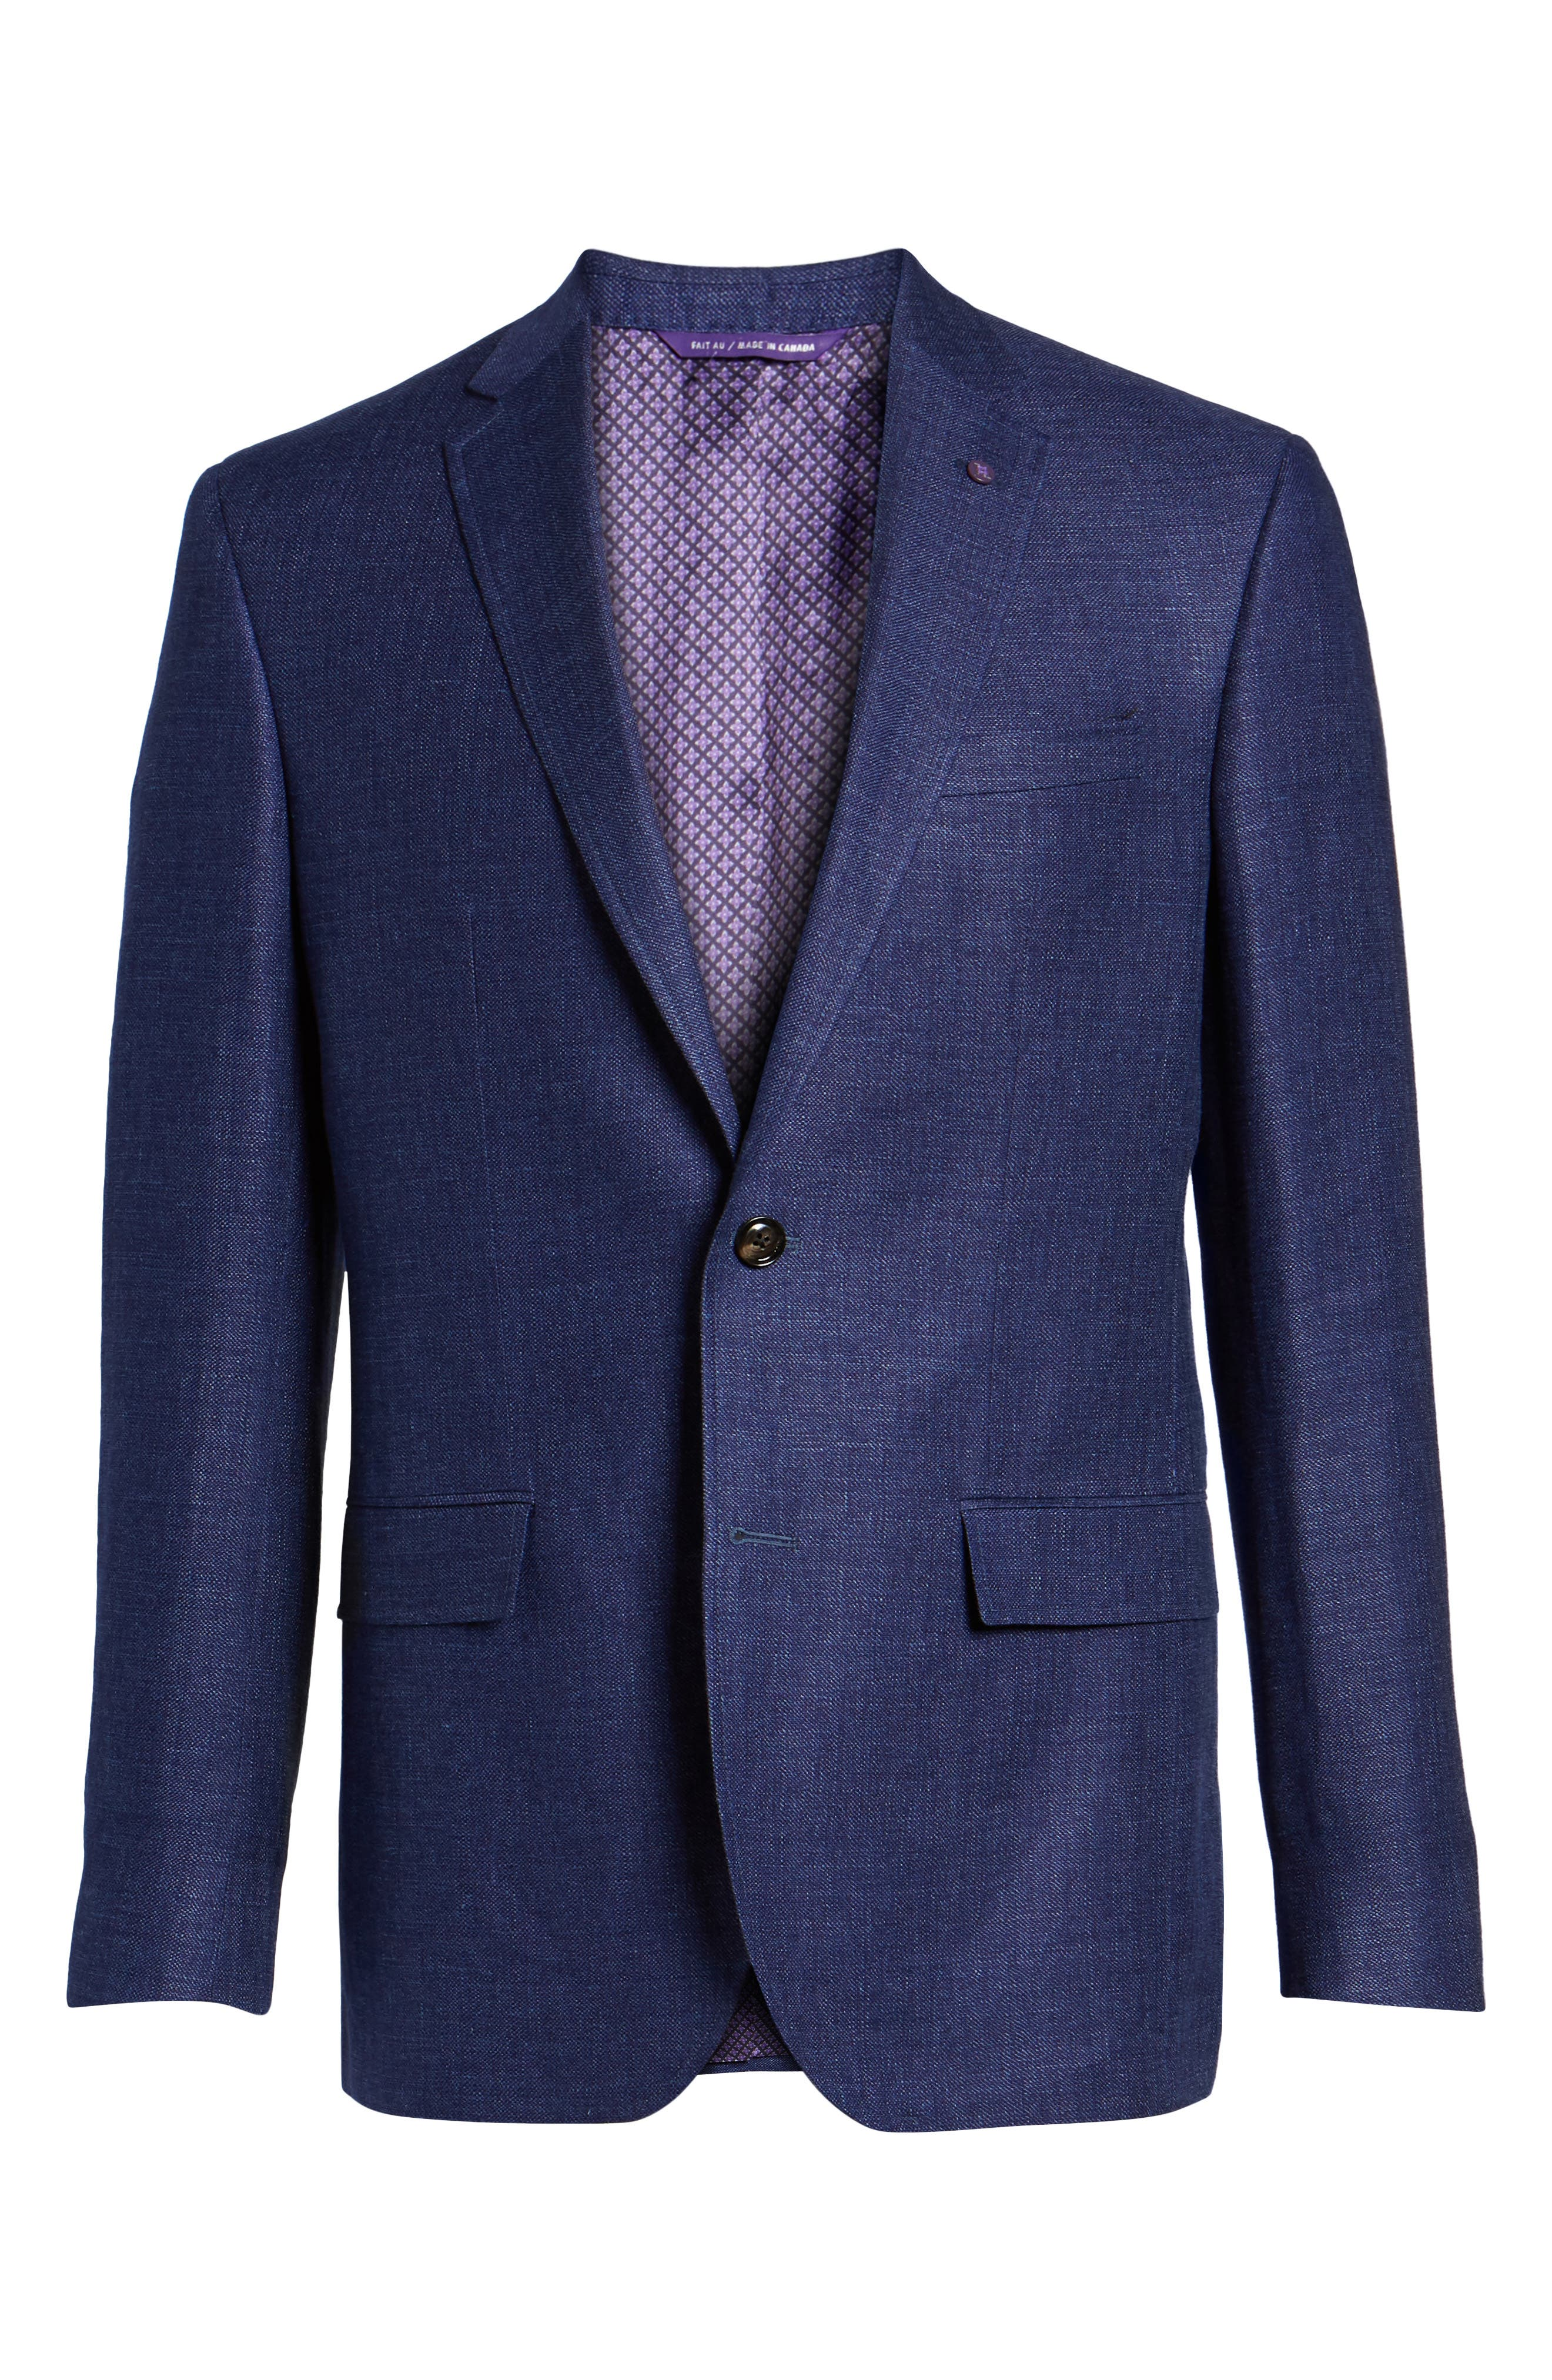 Jay Trim Fit Linen & Wool Blazer,                             Alternate thumbnail 5, color,